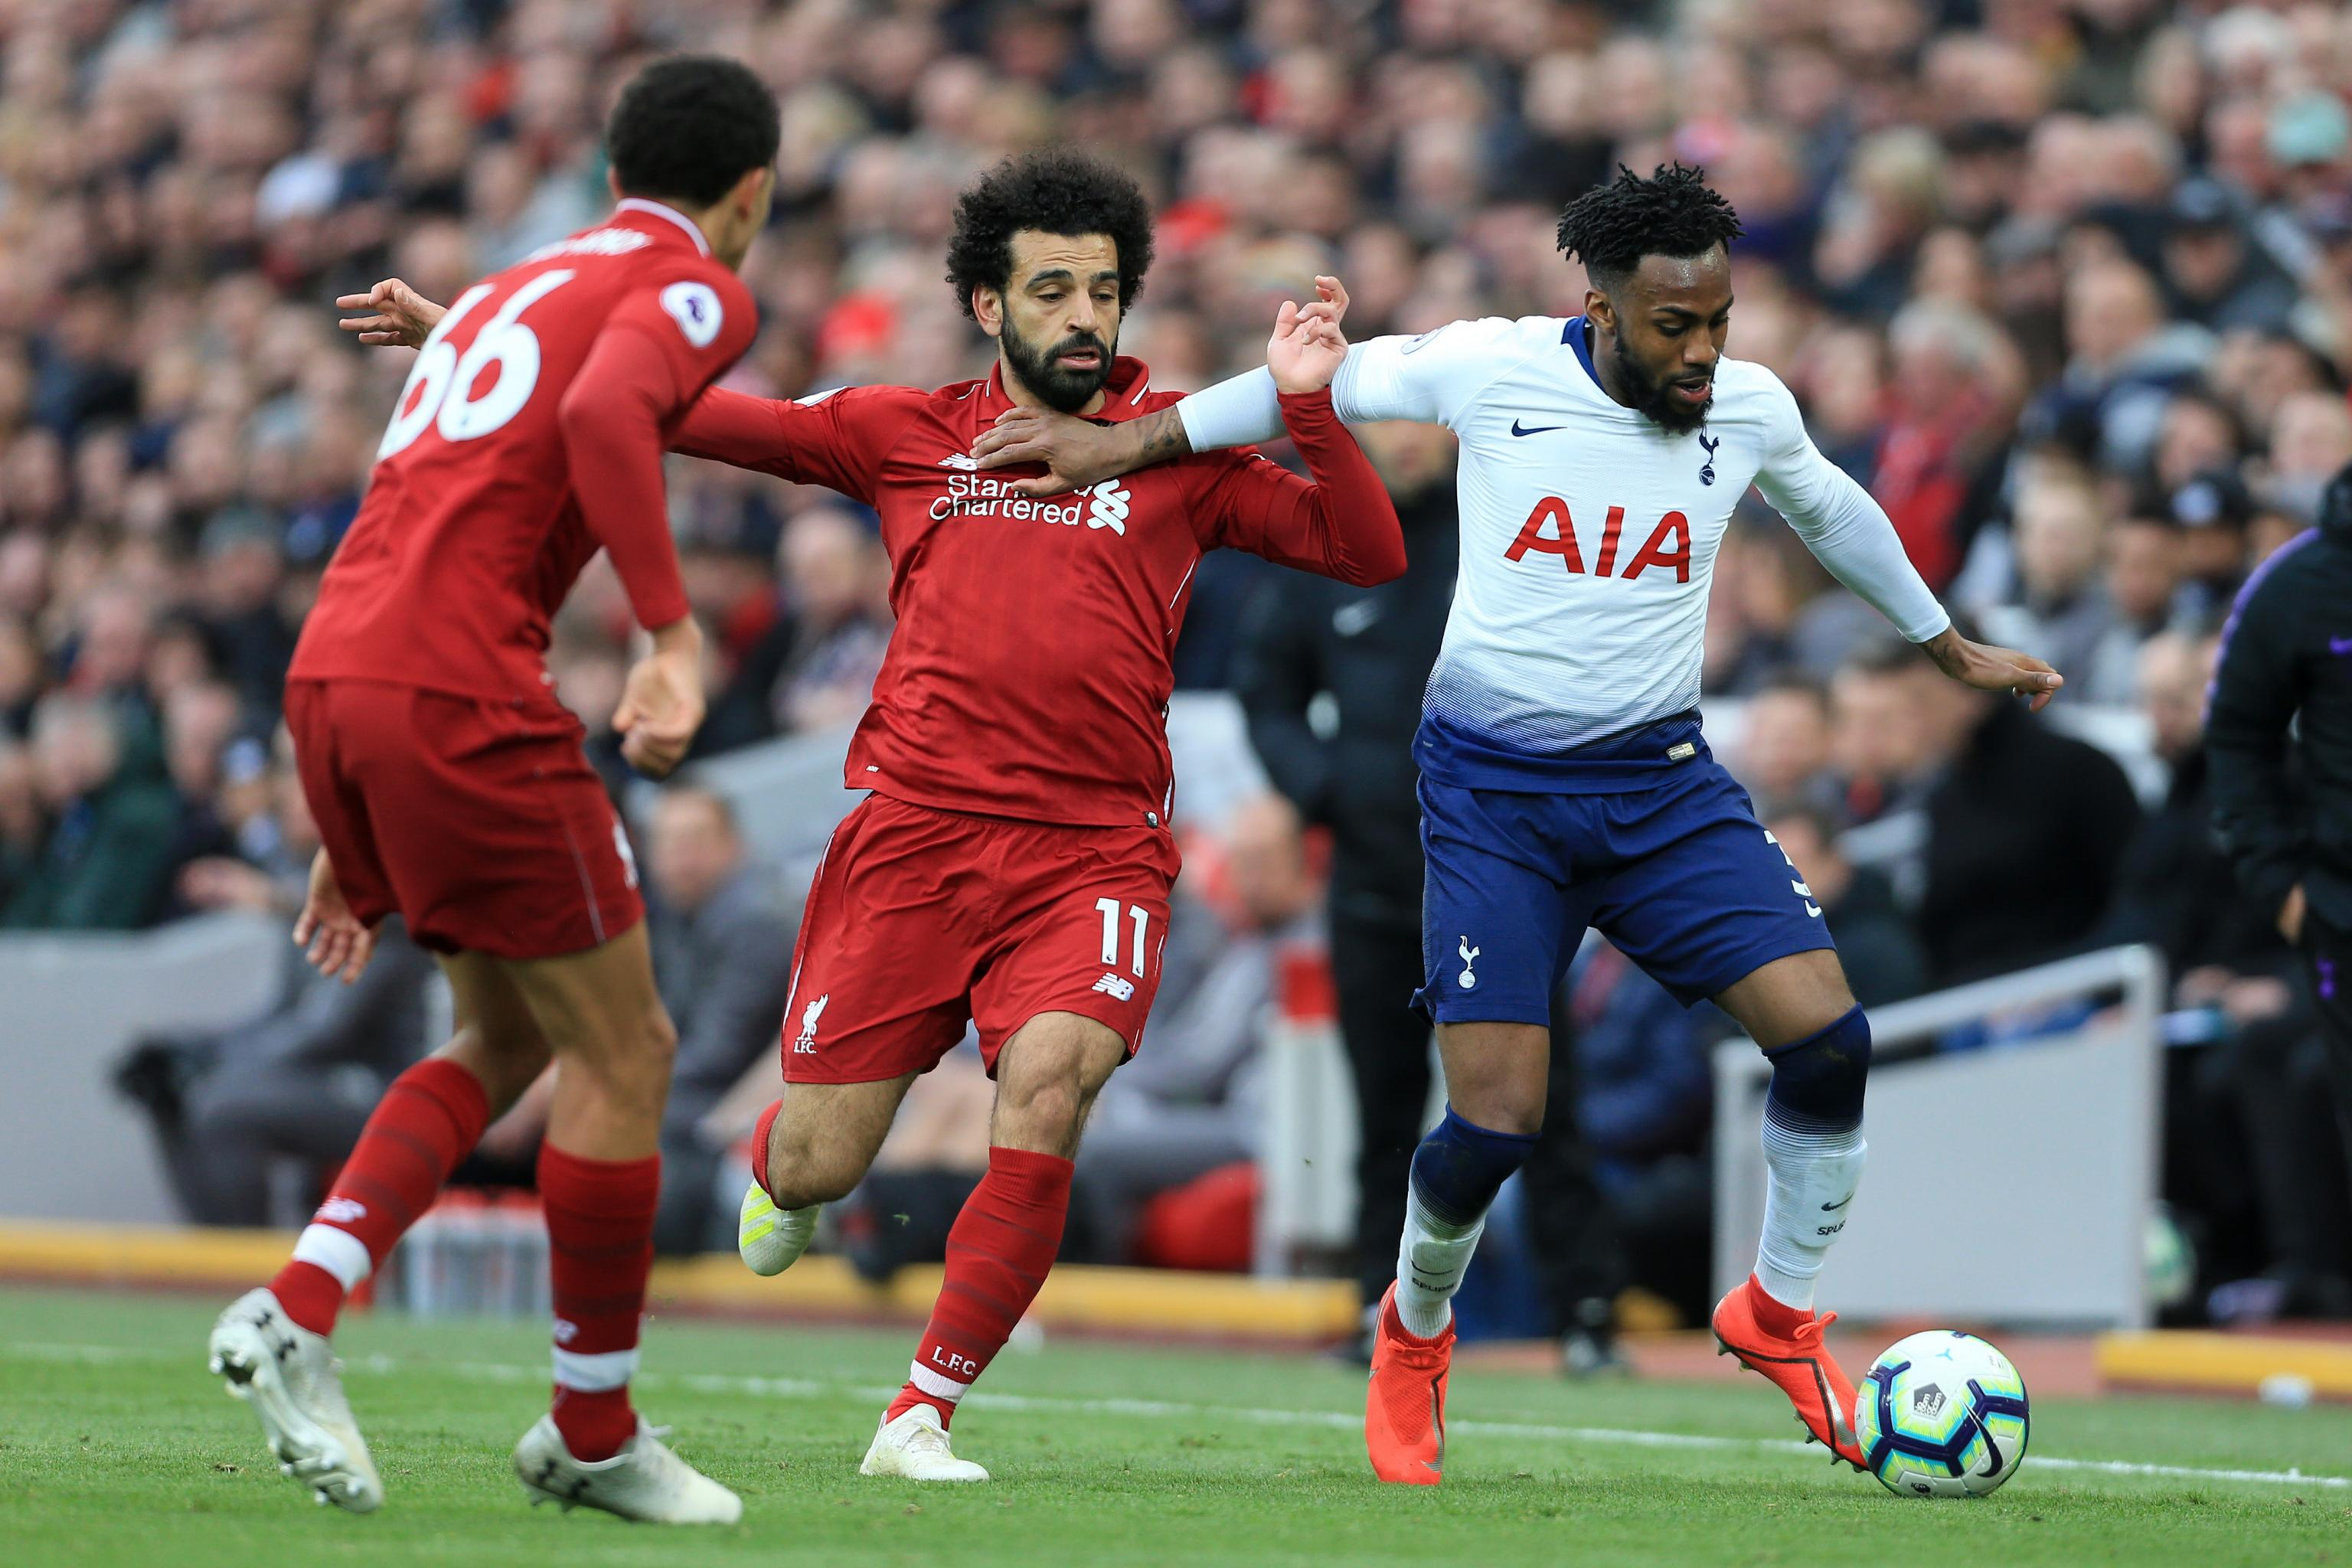 tottenham vs liverpool everything to know about the 2019 champions league final bleacher report latest news videos and highlights 2019 champions league final